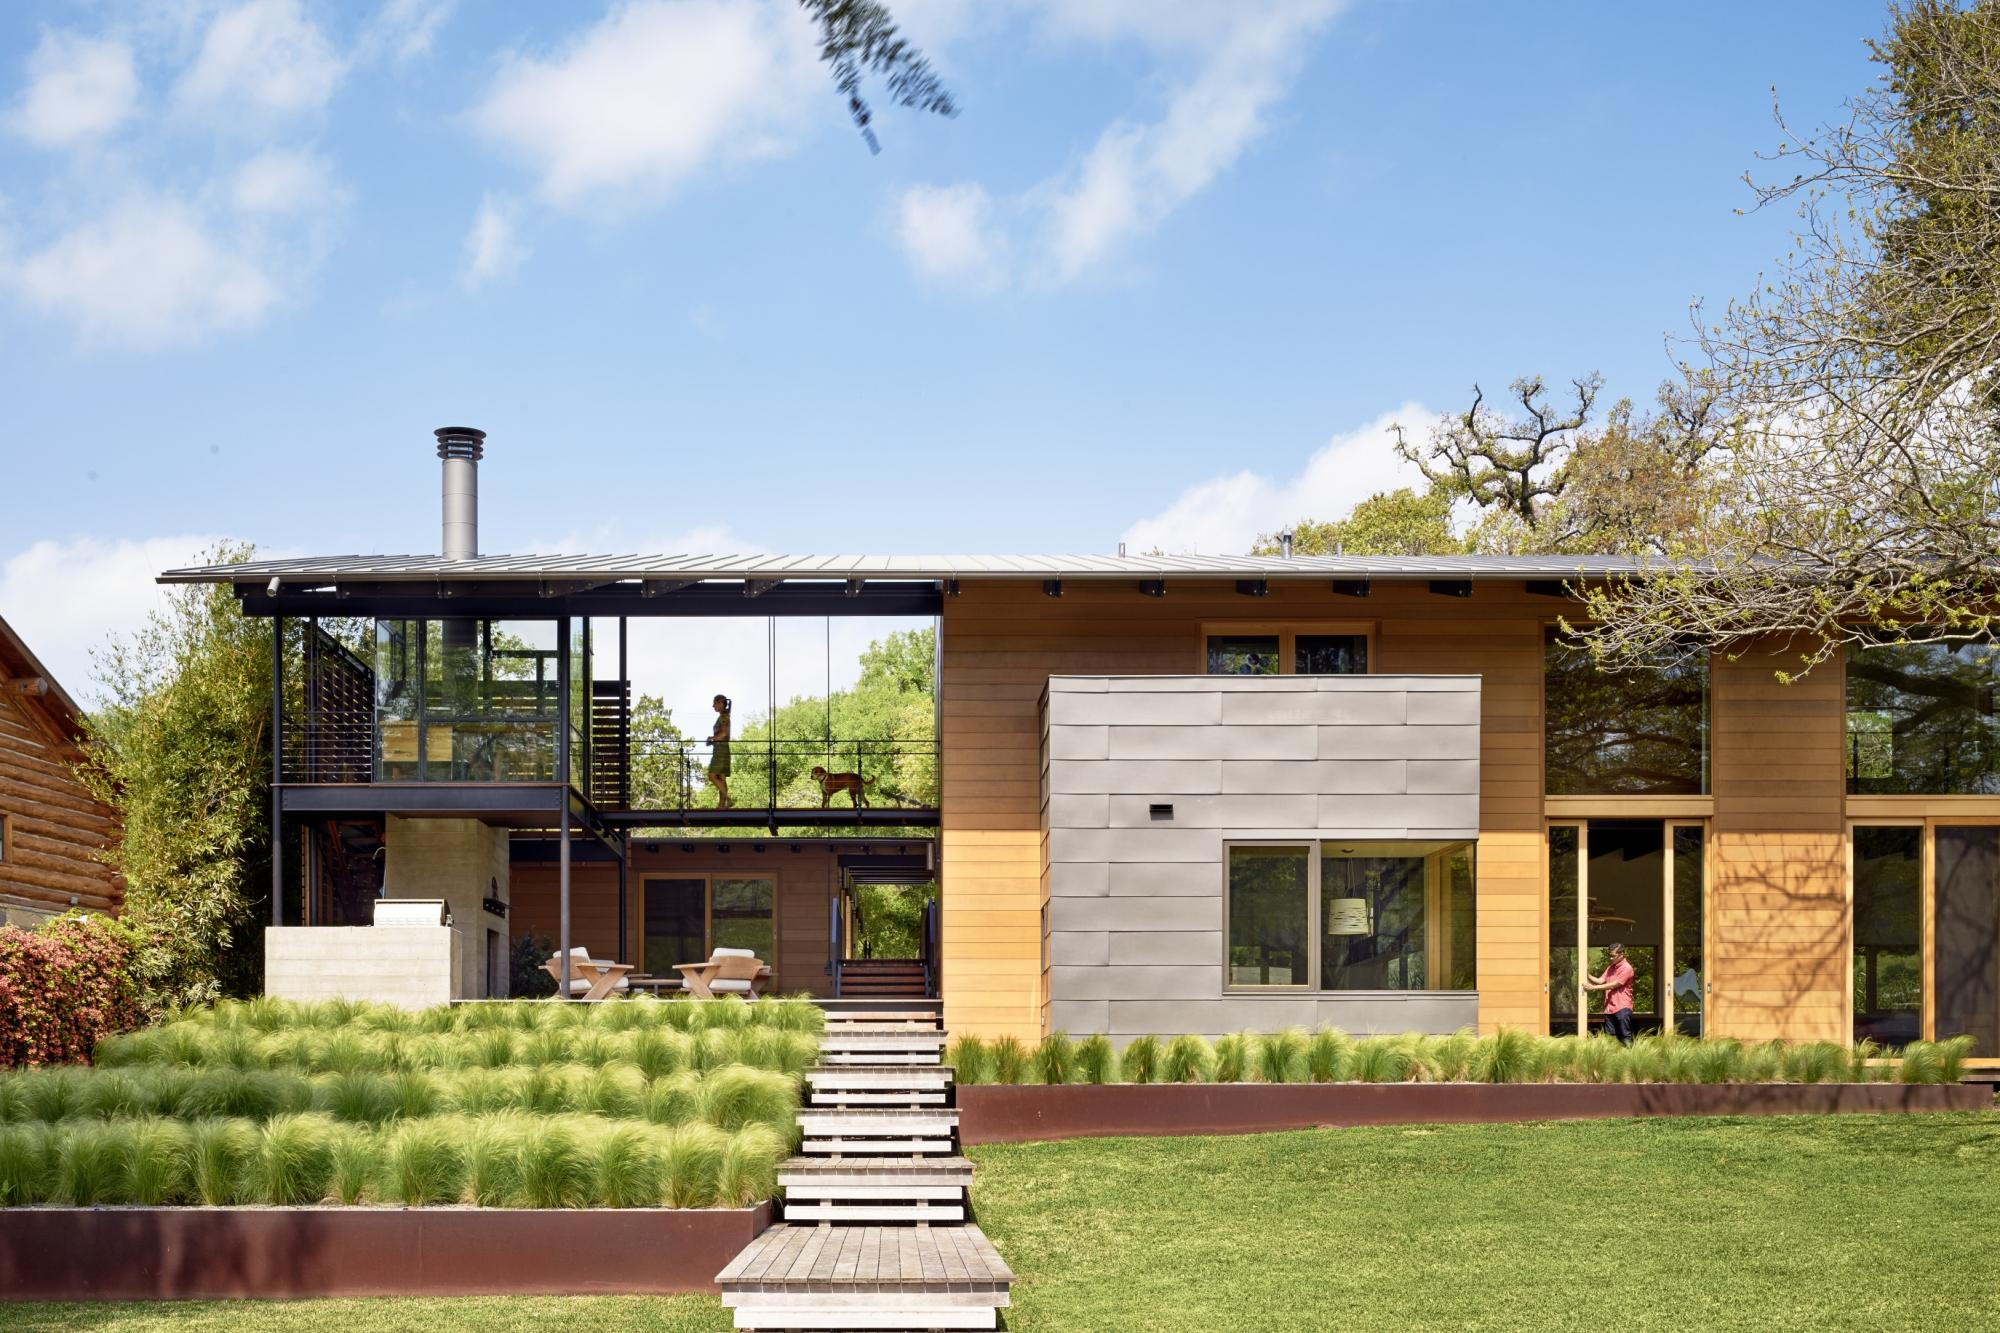 Situated at the confluence of Hog Pen Creek and Lake Austin, Hog Pen Creek Residence was envisioned by its owners as a place that evokes the playfulness of summer on the lake and emphasizes exterior living space. Towering heritage oak trees, a steeply slo